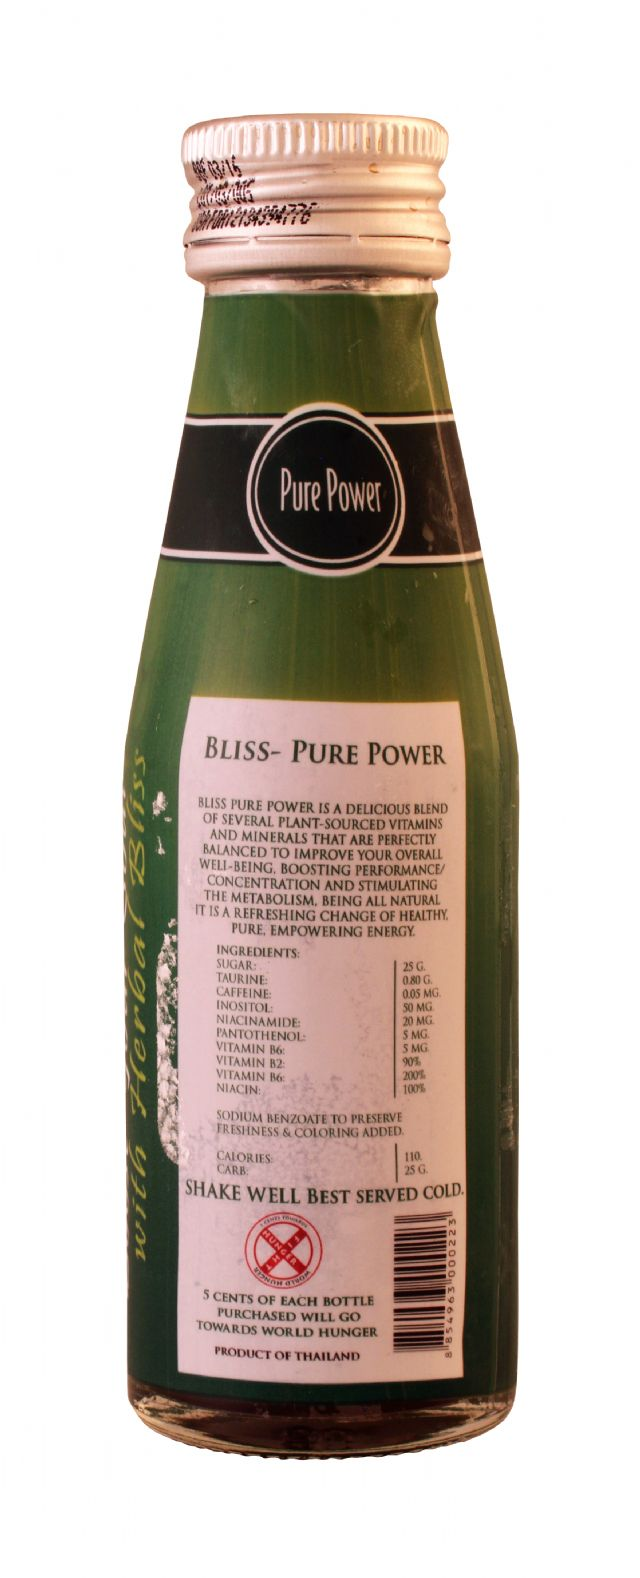 Bliss Natural Energy Drink: Bliss PurePower Facts